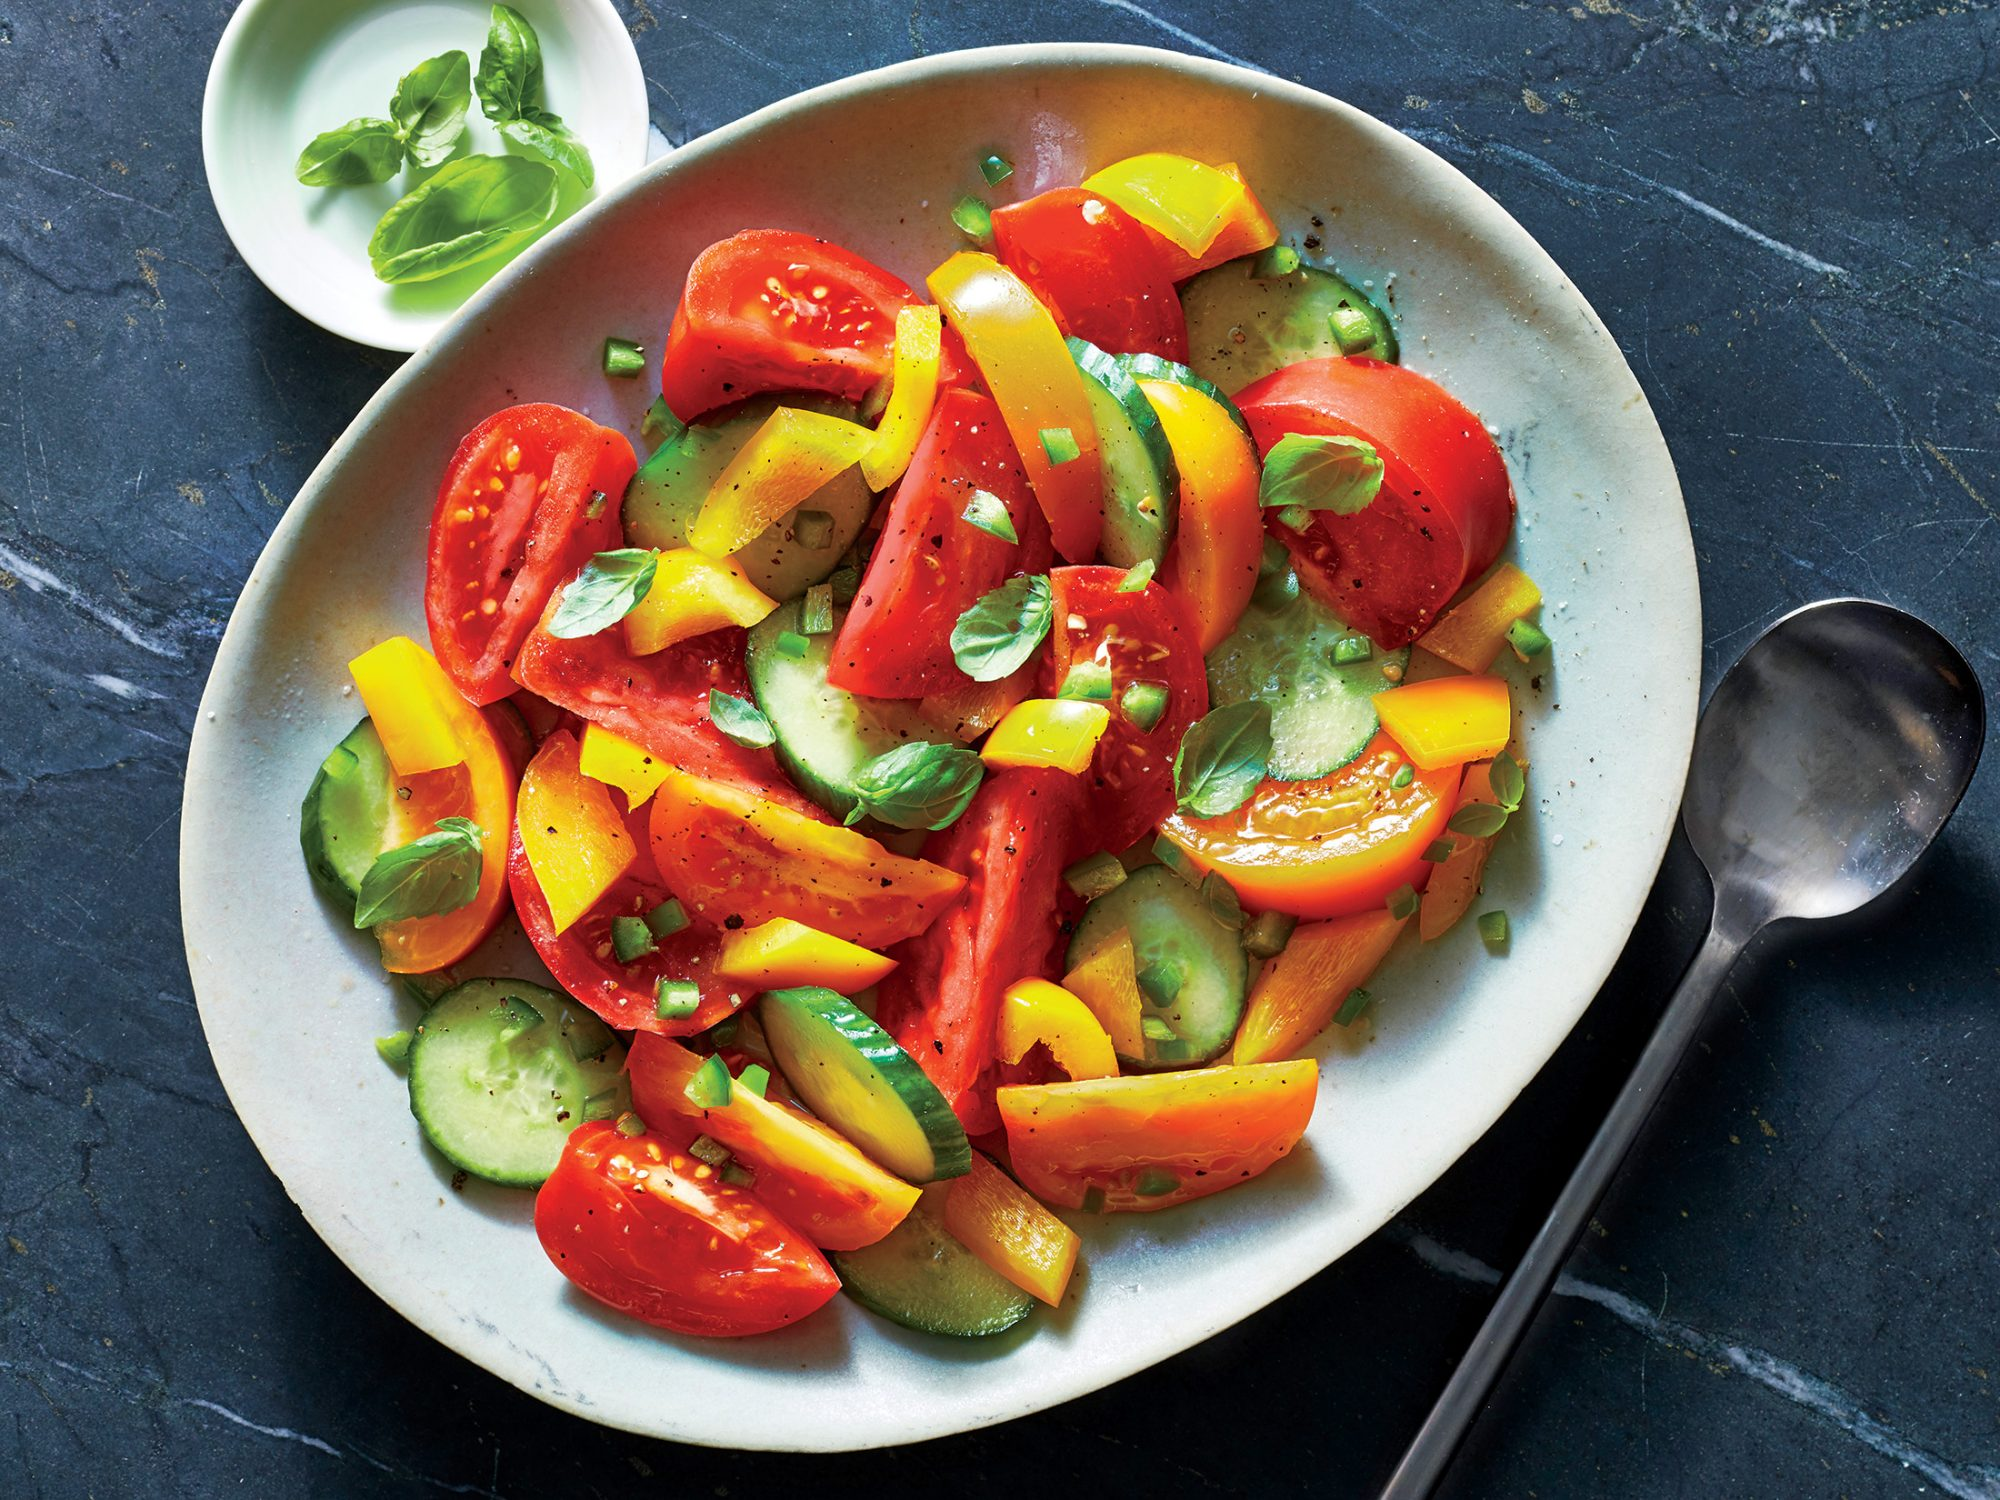 ck-Spicy Tomato-Cucumber Salad